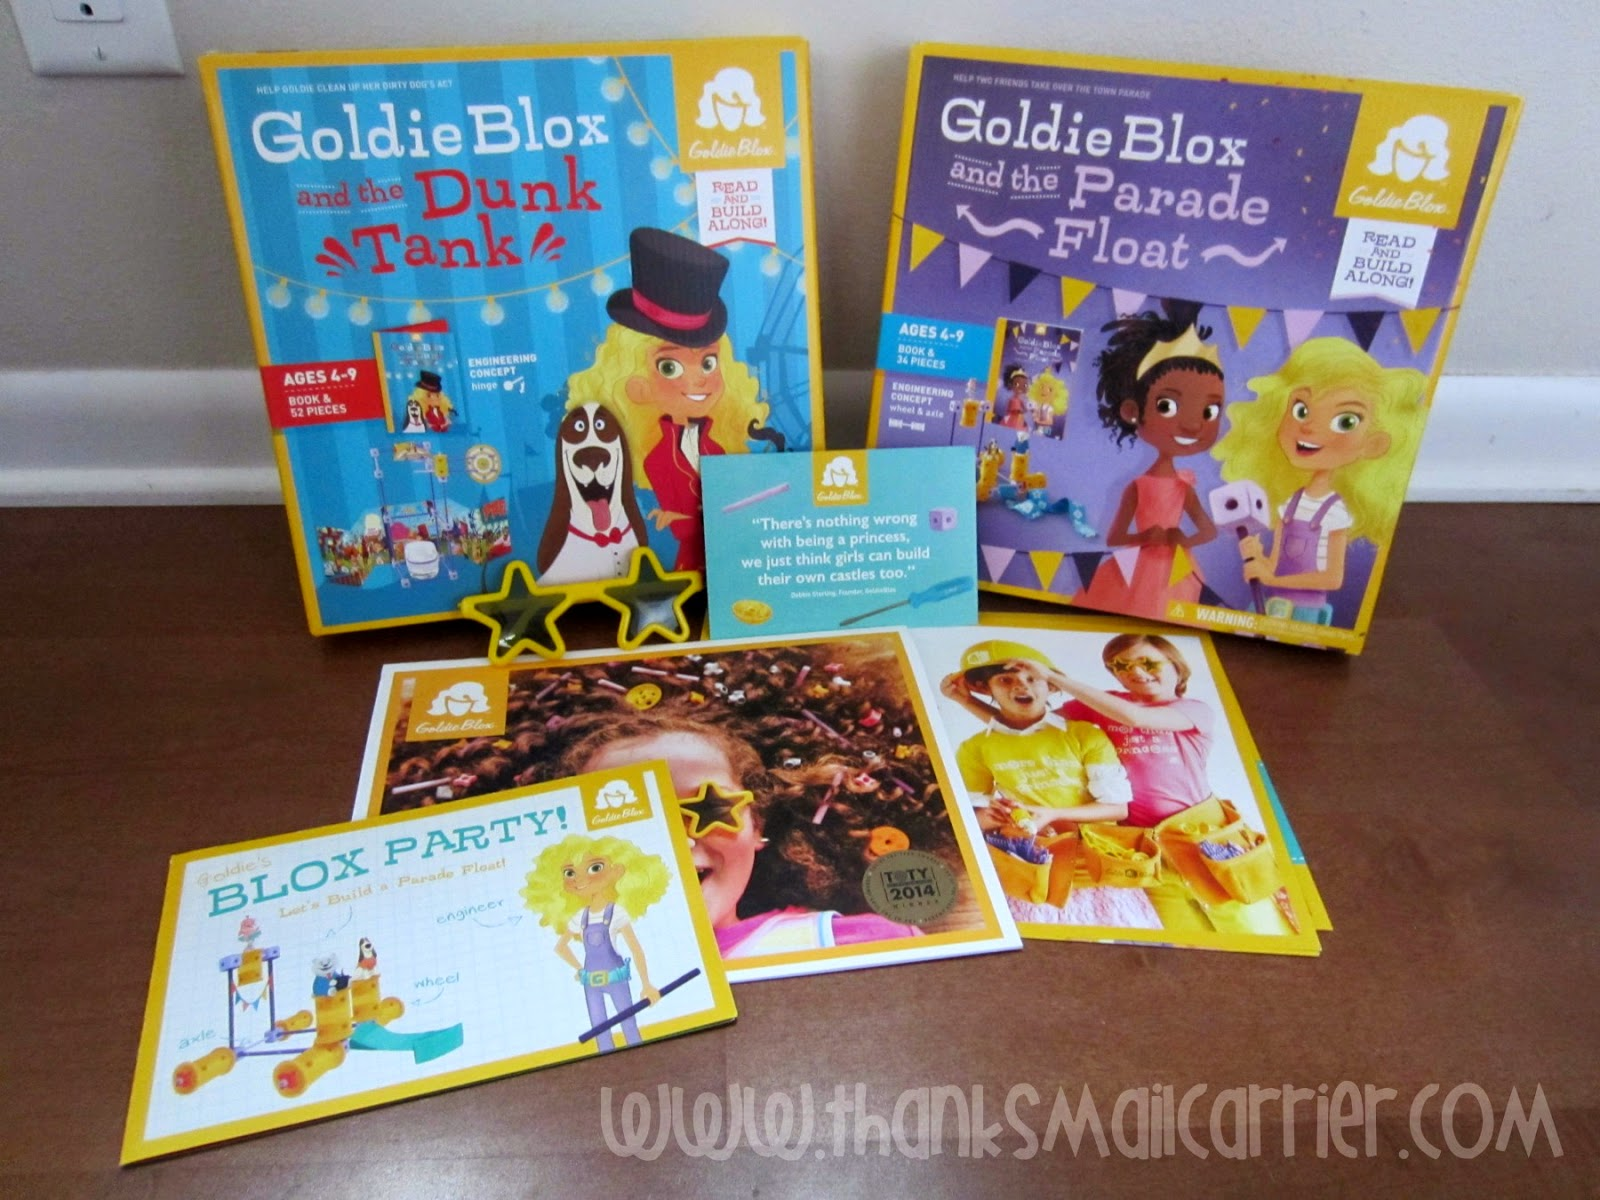 GoldieBlox products